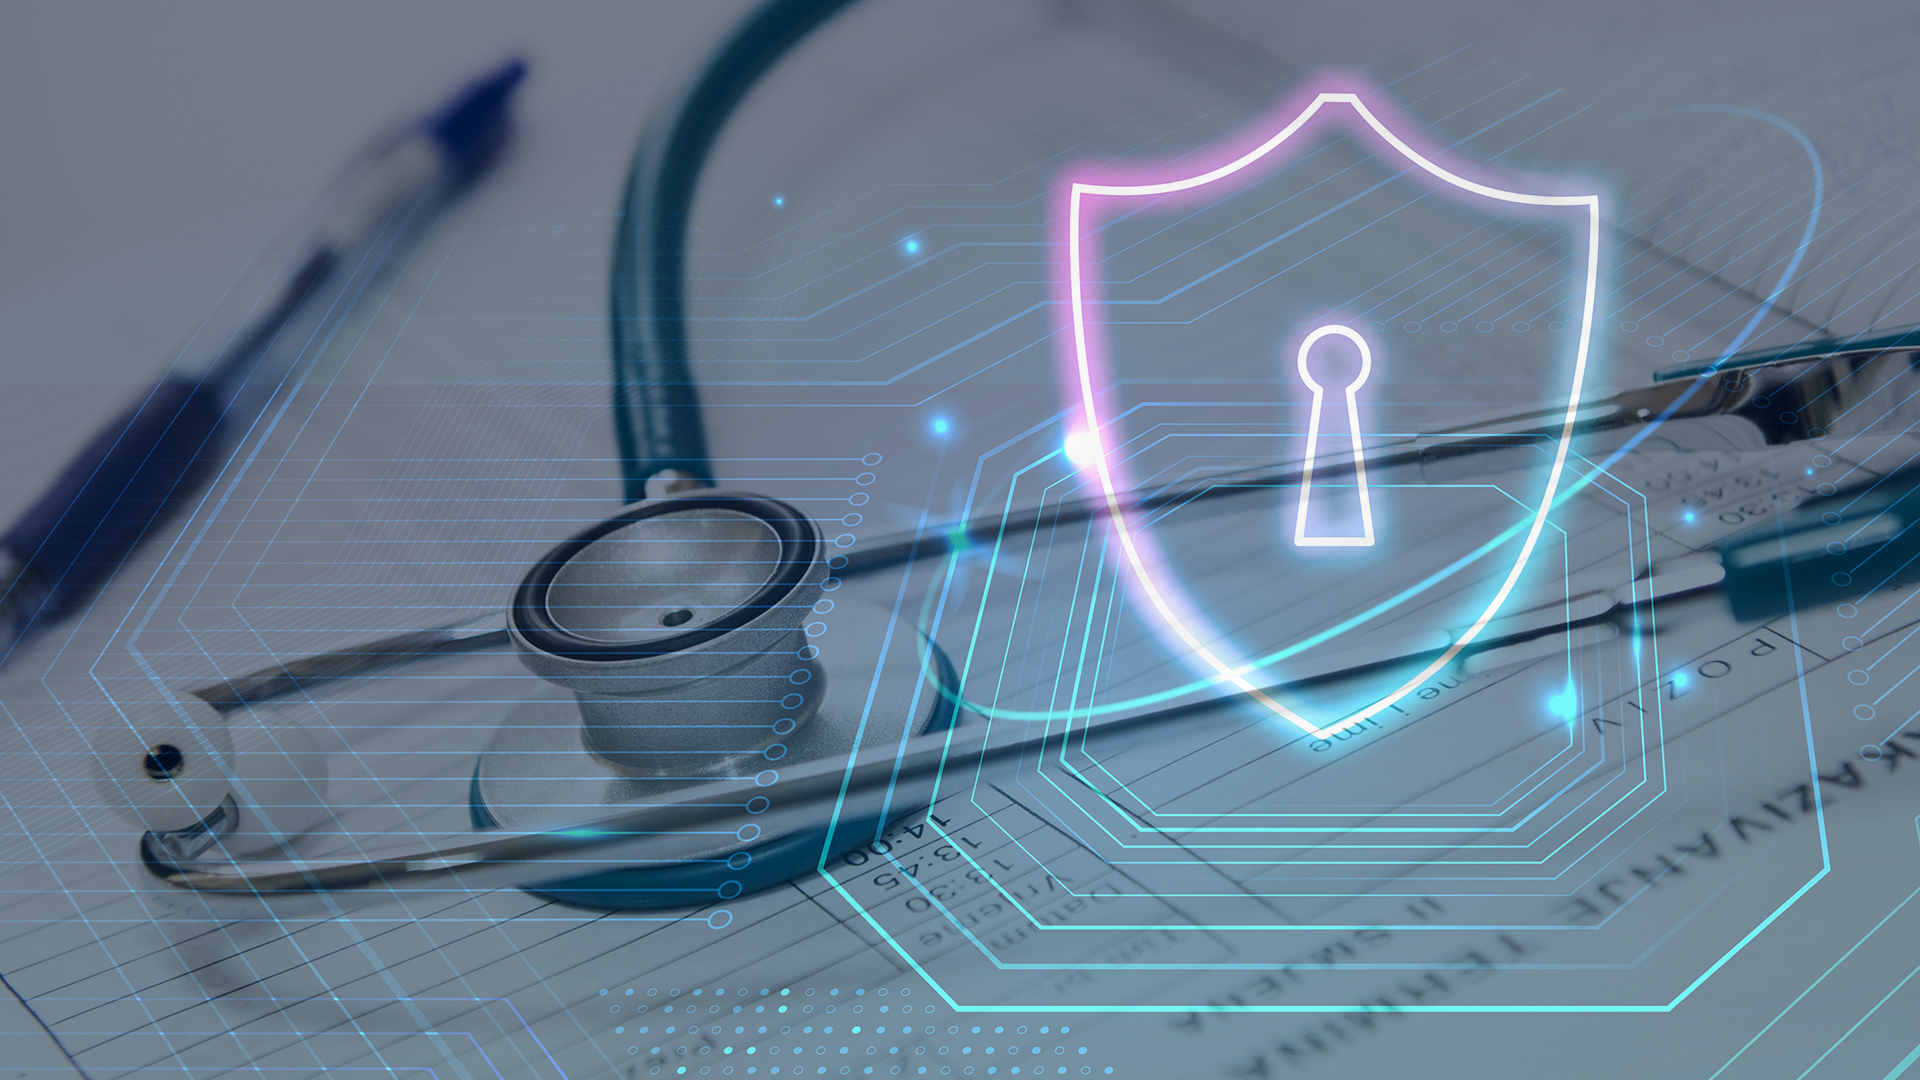 Healthcare sector more likely to suffer non-monetary types of cyberattack damage